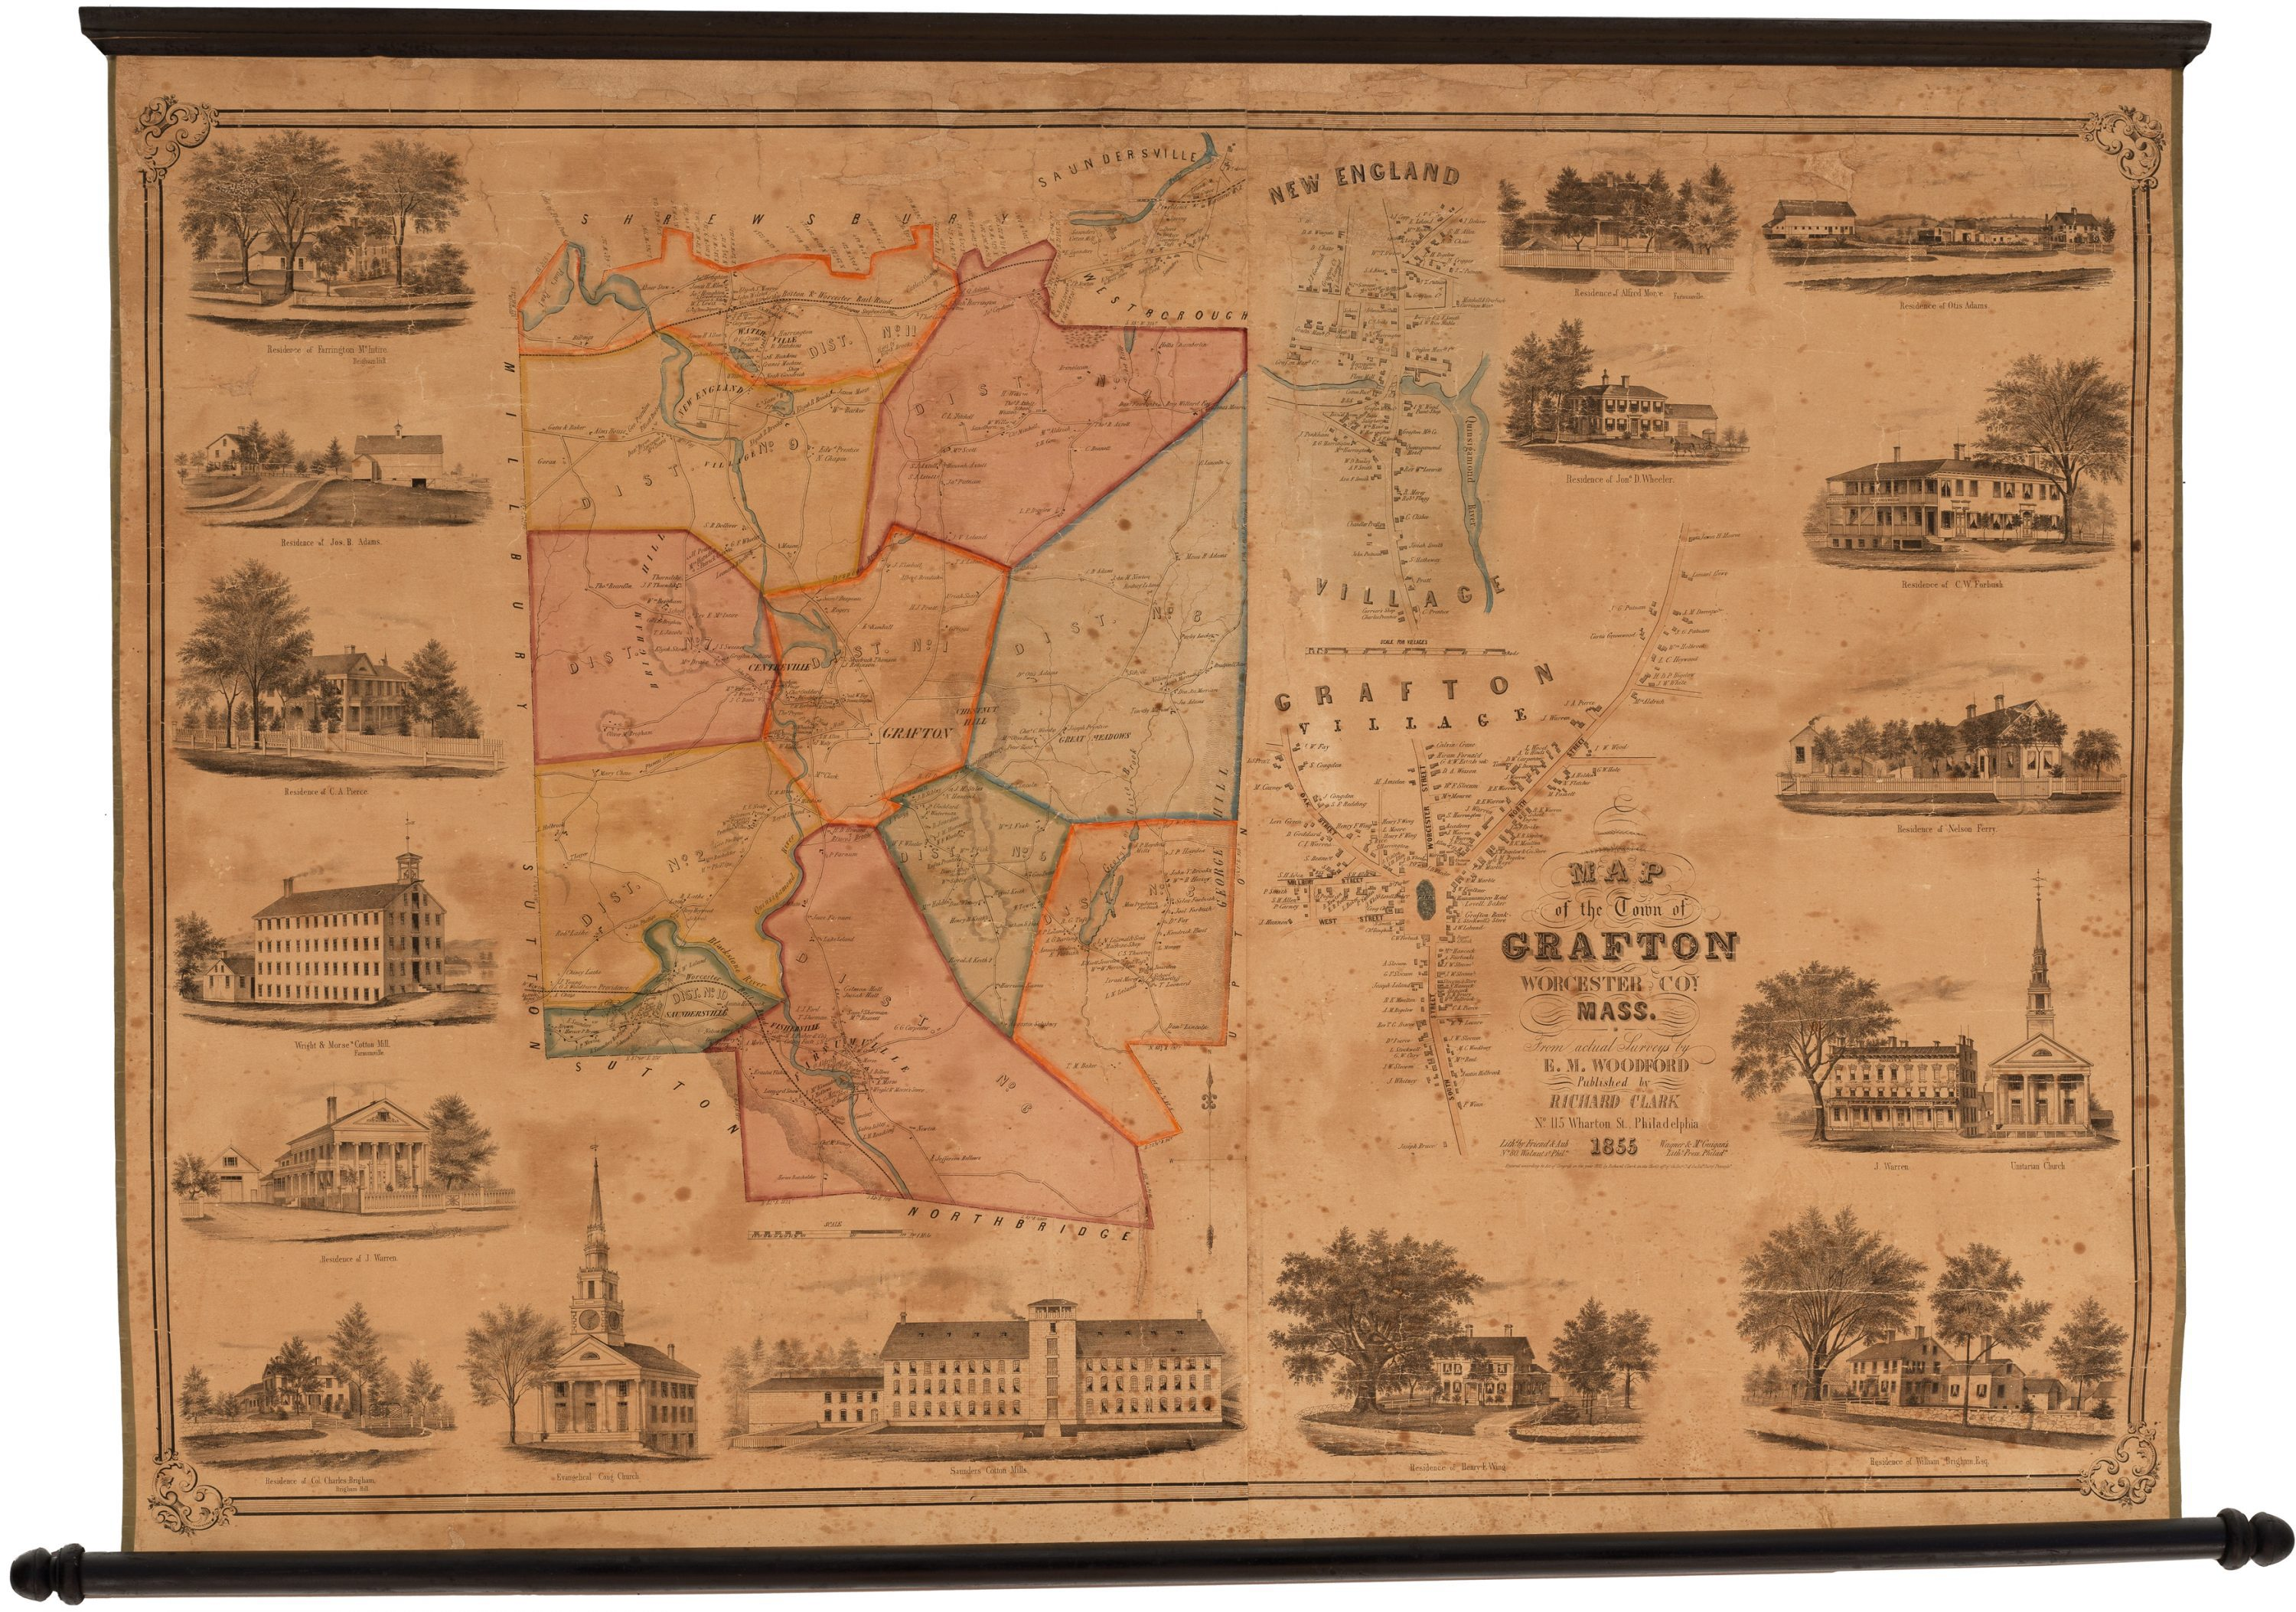 Rare 1855 wall map of Grafton Machusetts - Rare & Antique ... Map Of Union Ct Town on map downtown new london ct, map of maine rivers, map of south st, map of covered bridges ashtabula county ohio, map of indiana covered bridges, map of pine st, mashapaug lake union ct, map of uniontown, map of connecticut, map of paul st, map of franklin st, map of hampton nh, map of eastern kentucky cities,